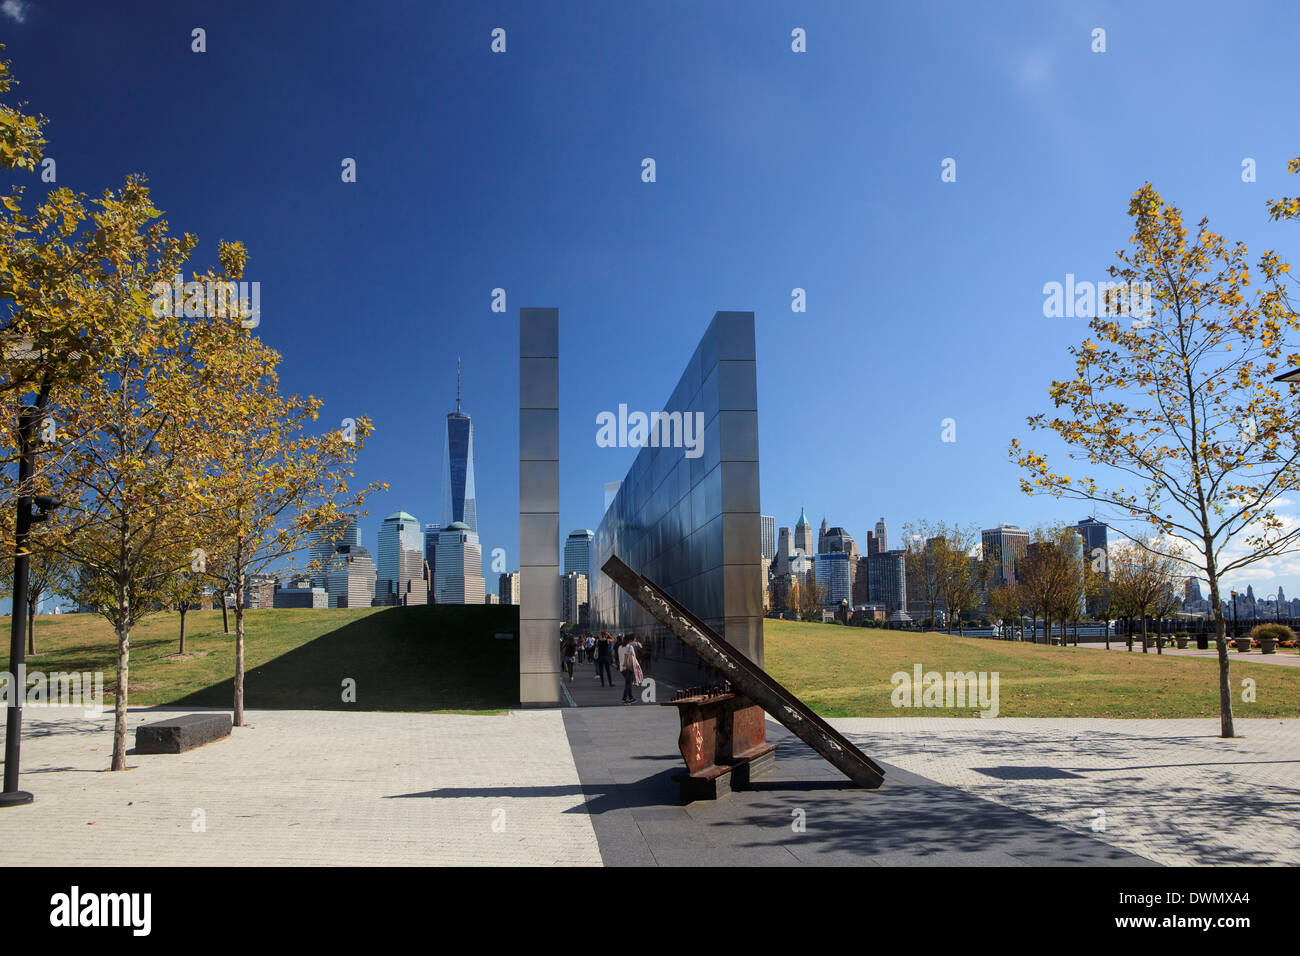 Empty Sky is the memorial to the state's victims of the September 11 attacks on the USA, Jersey City, New Jersey - Stock Image